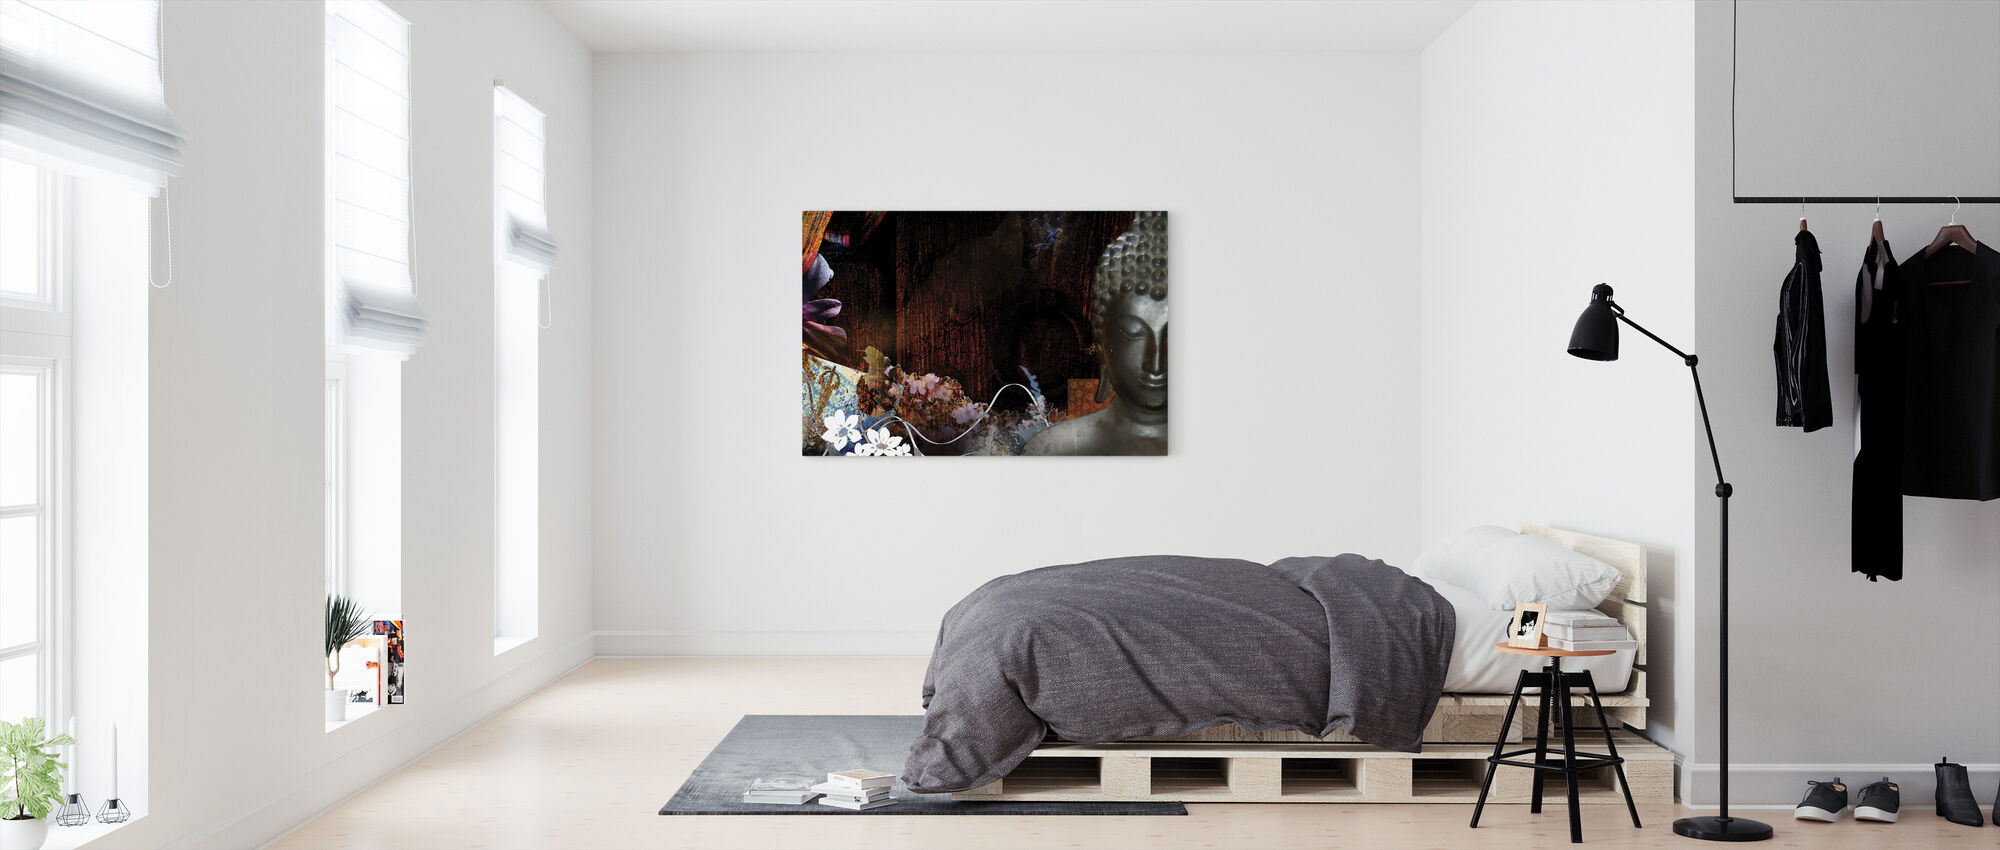 Buddha with Flowers - Canvas print - Bedroom